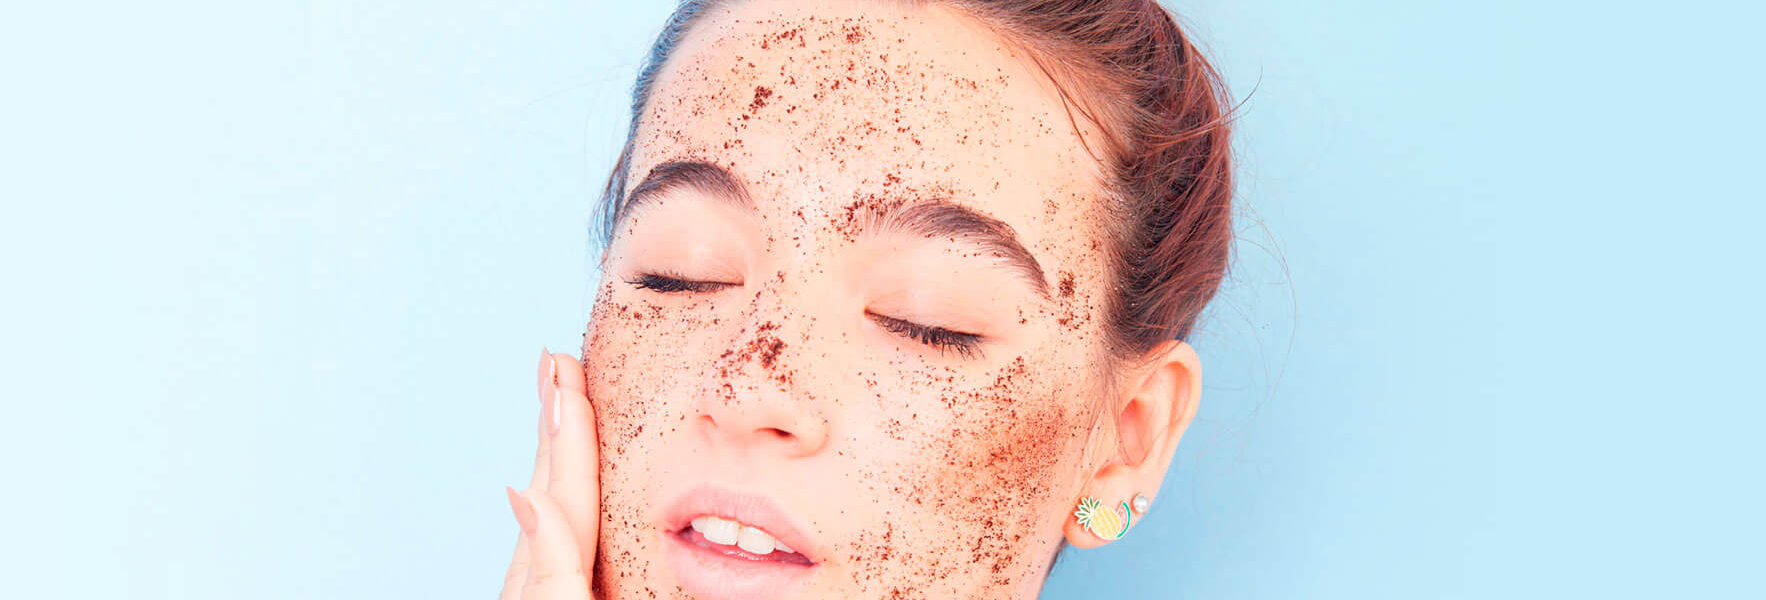 como hacer una buena exfoliacion facial alice in beautyland blog cleanseme scrub alice